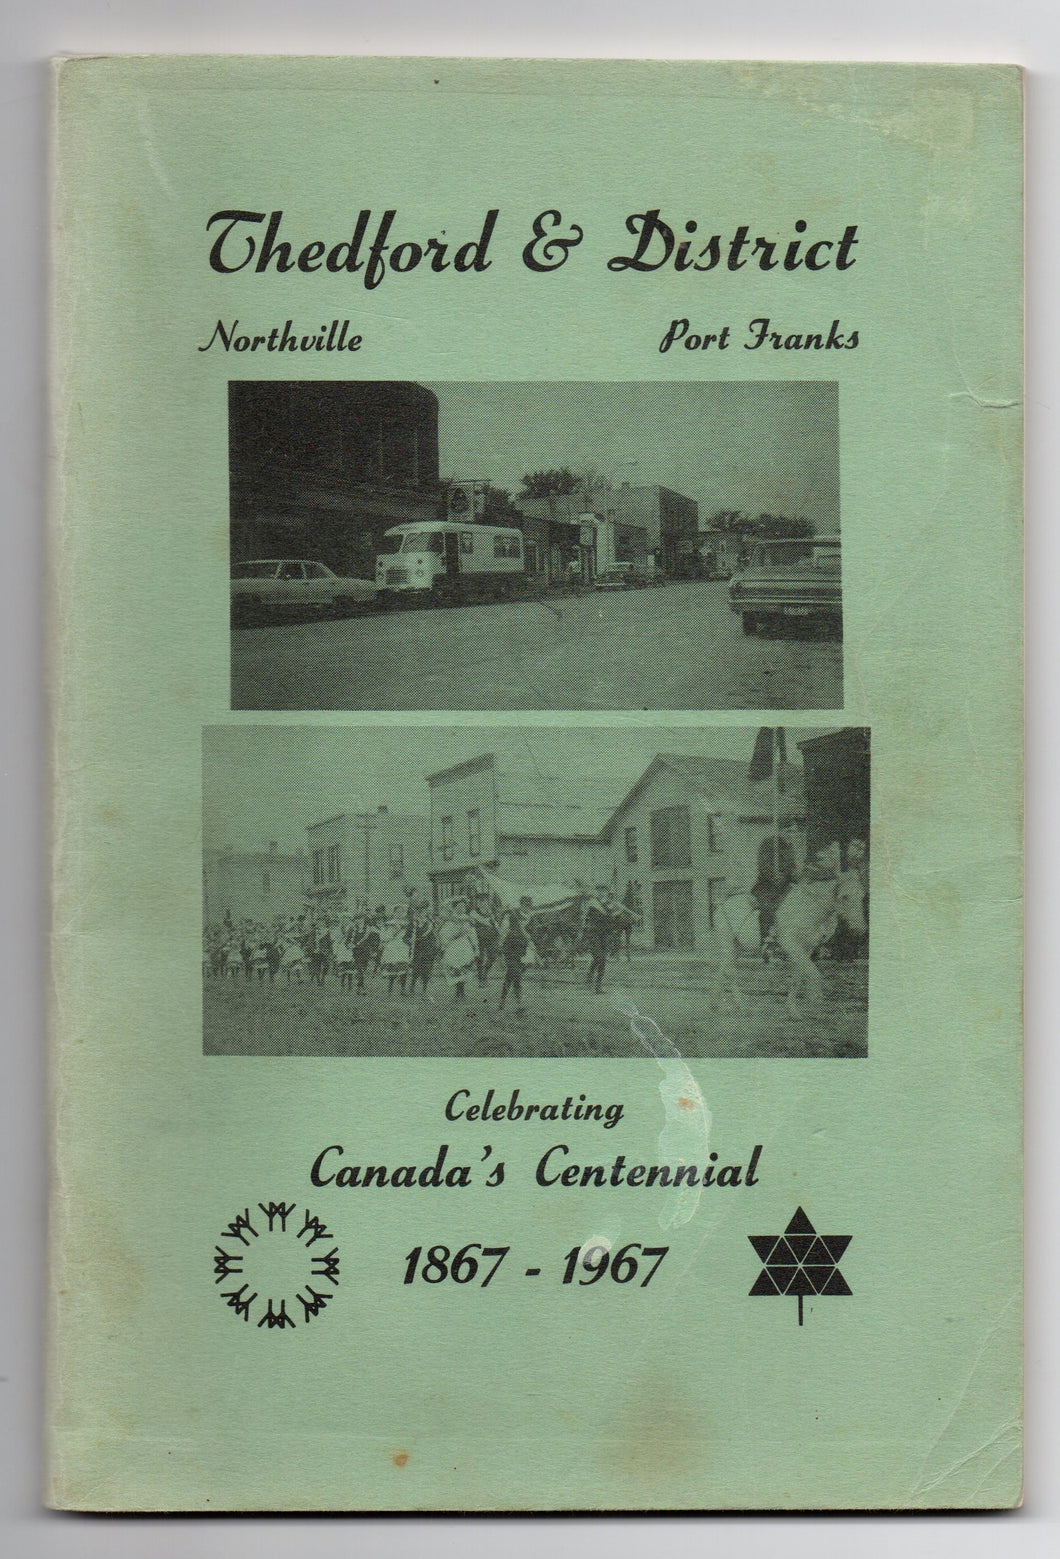 Thedford & District, Northville, Port Franks: Celebrating Canada's Centennial 1867-1967